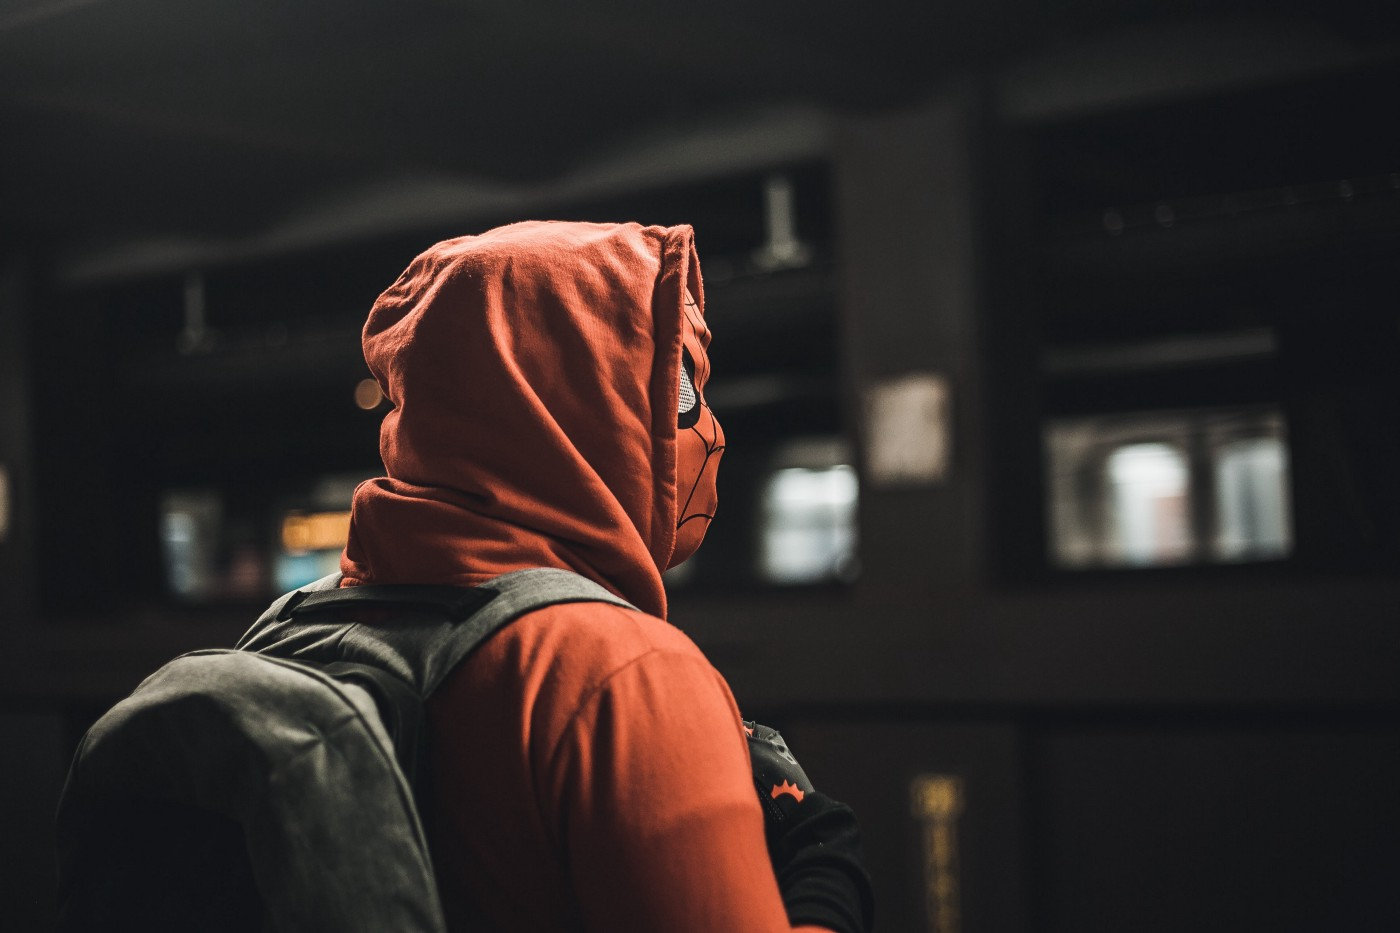 A person in a red hoodie. The hood is pulled up, they wear a grey backpack, and their face is concealed behind a Spider-Man mask. They appear to be waiting for the subway.